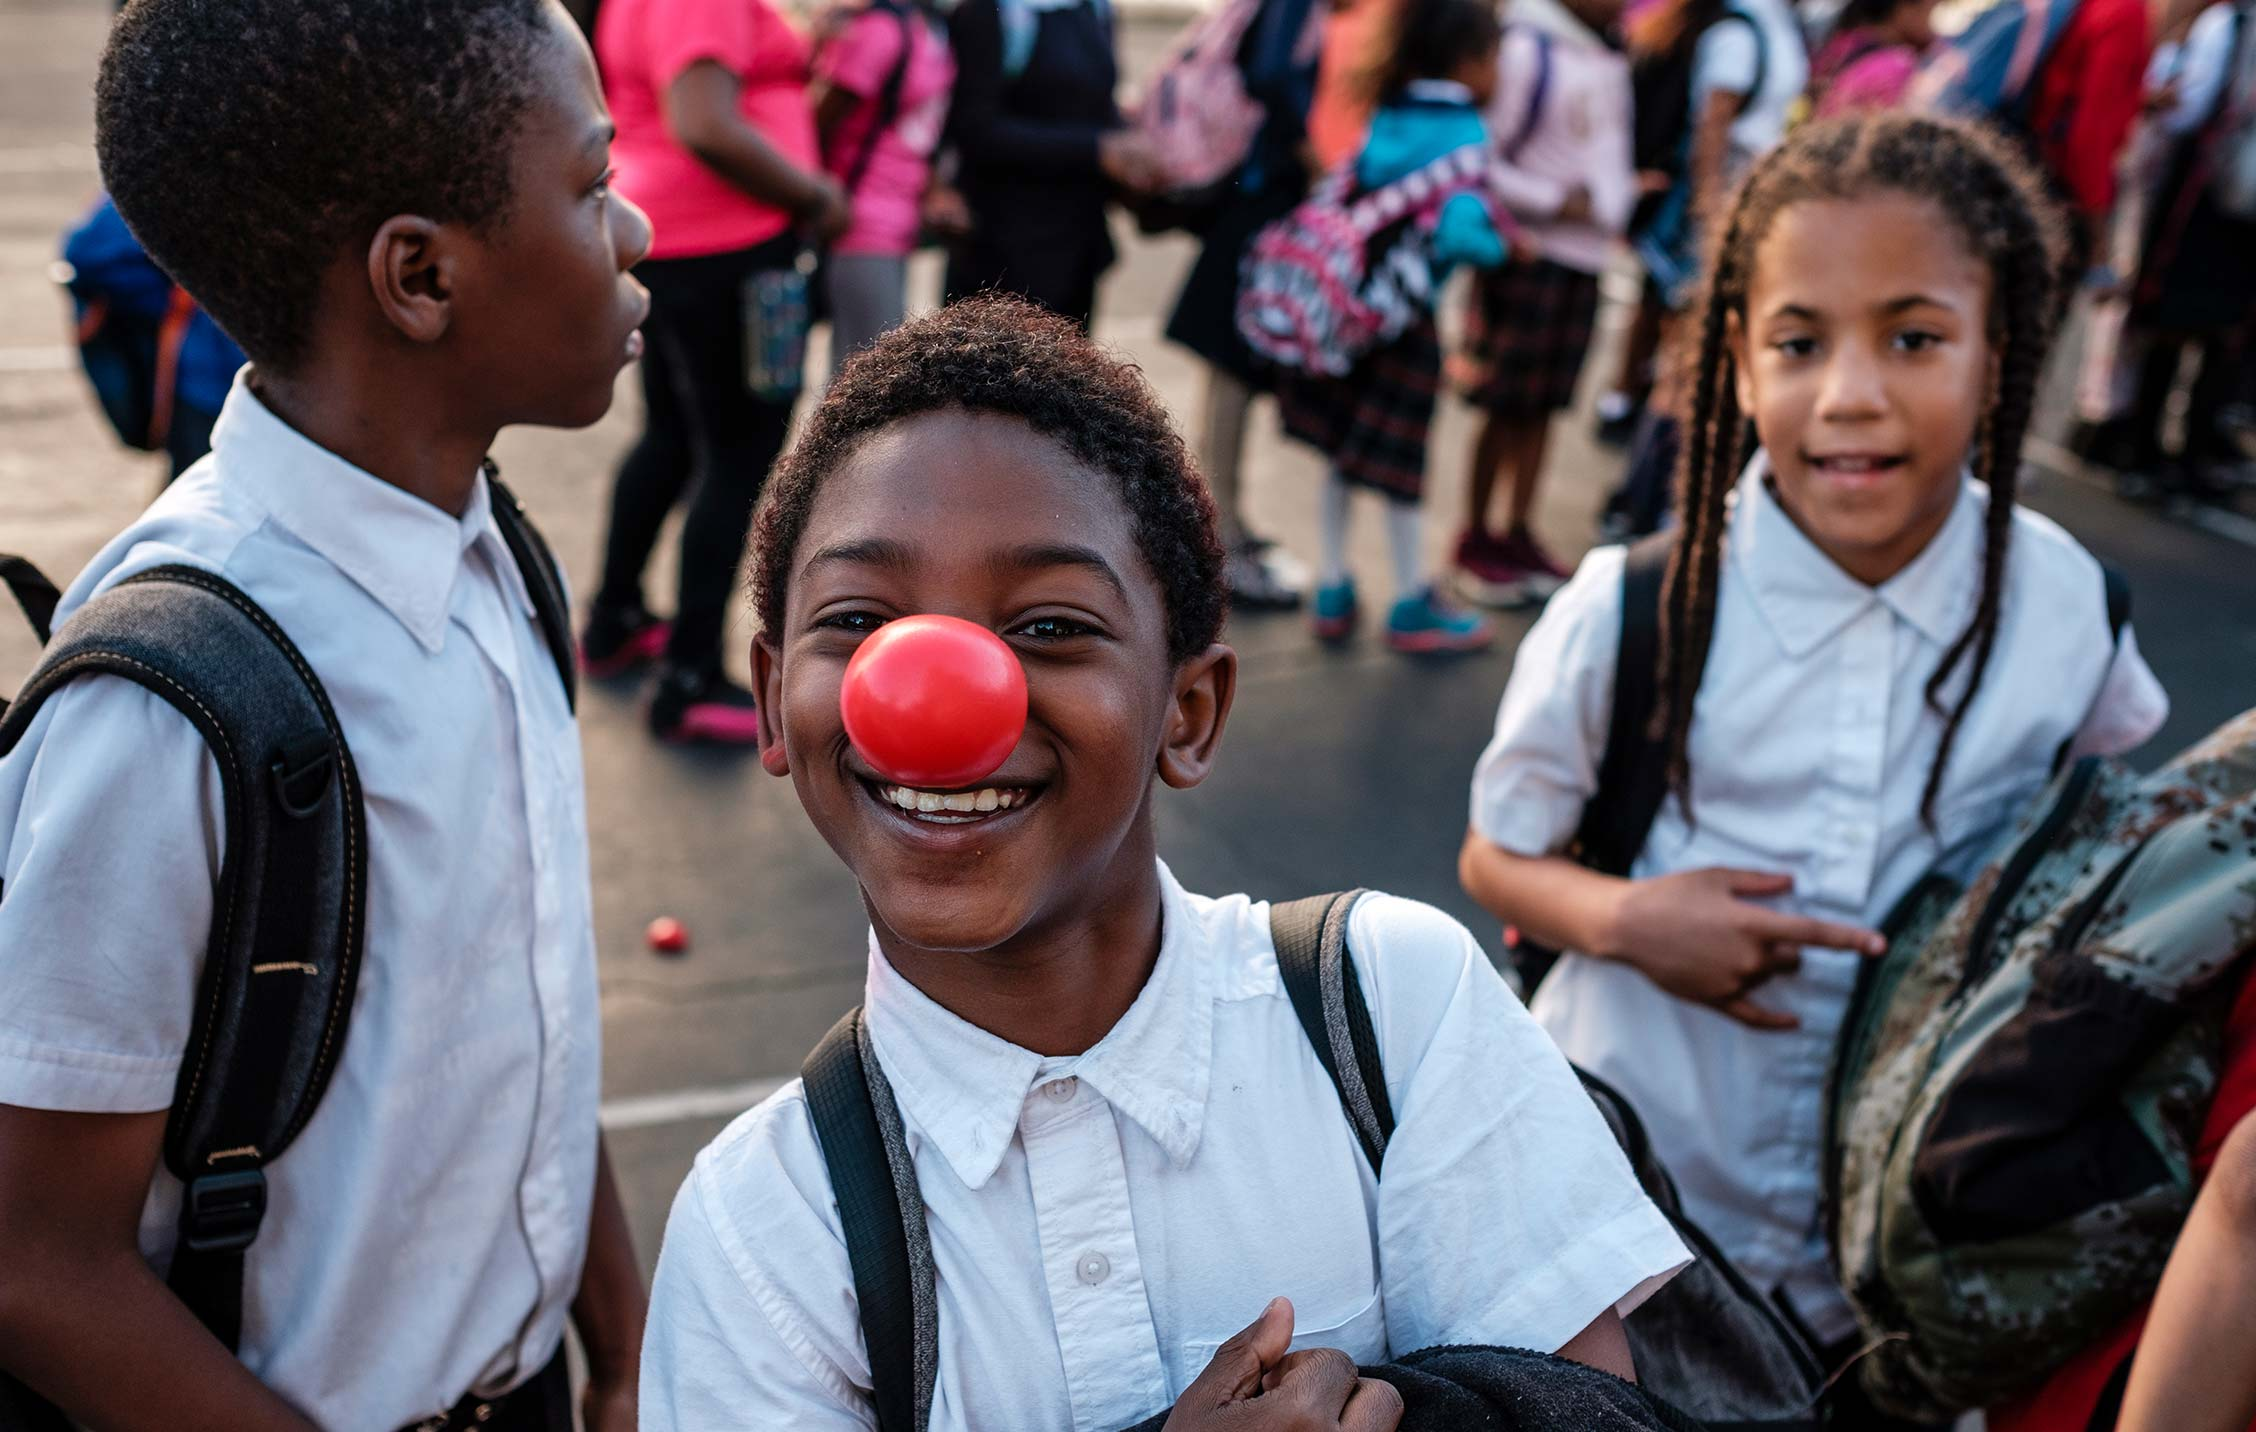 Children at a Boys & Girls Club Red Nose Day Block Party in Summer 2018